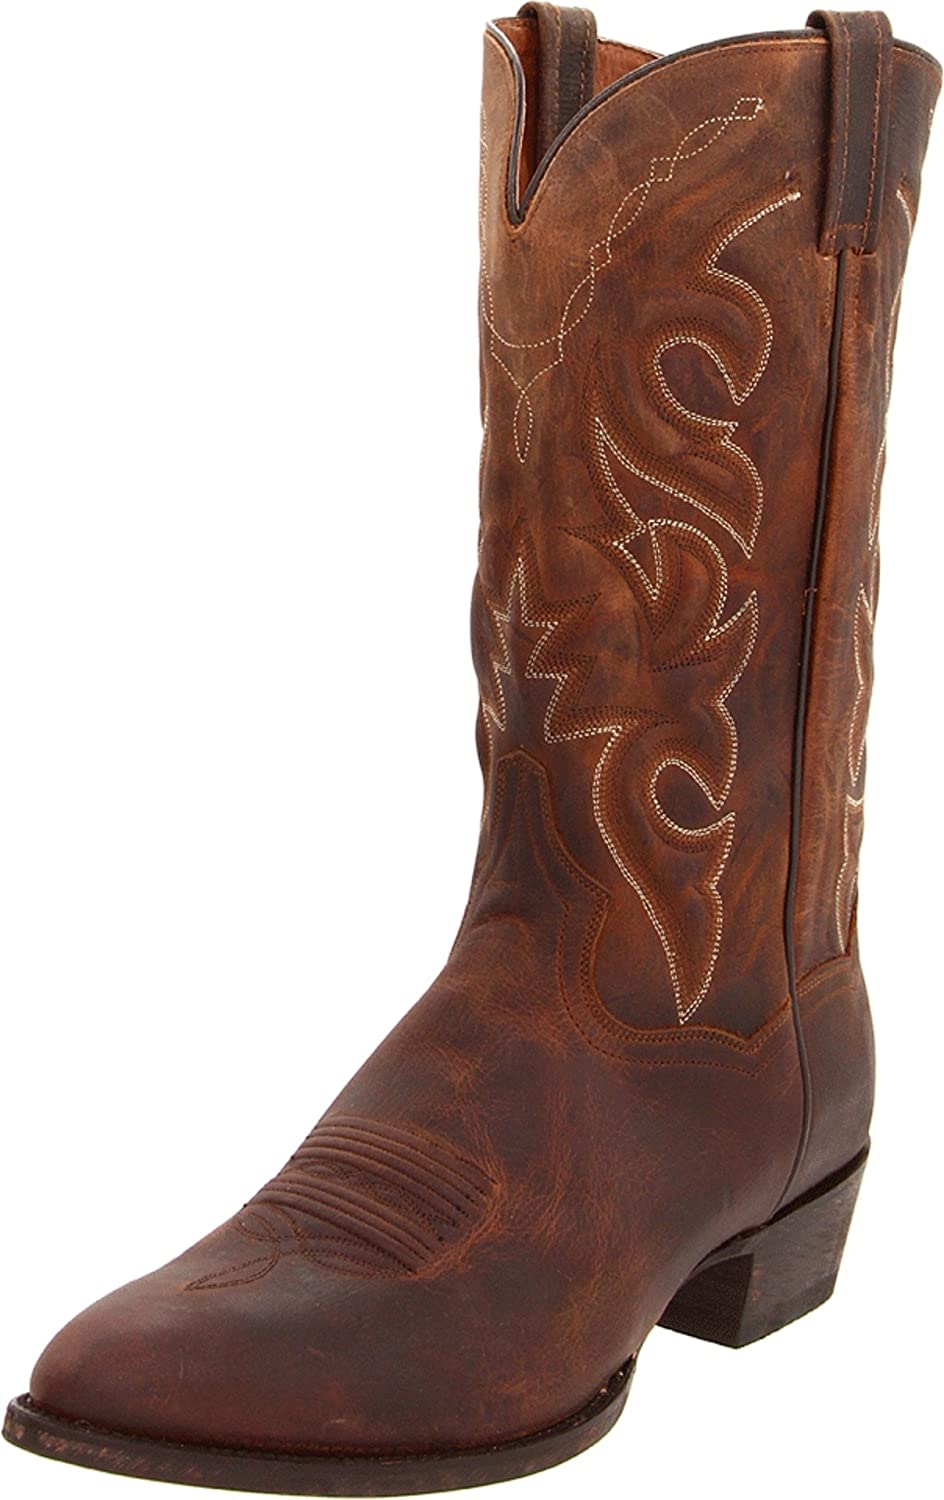 Dan Post Boots Tulsa Mall Mens Renegade Round Calf Year-end annual account - Toe Brown Mid